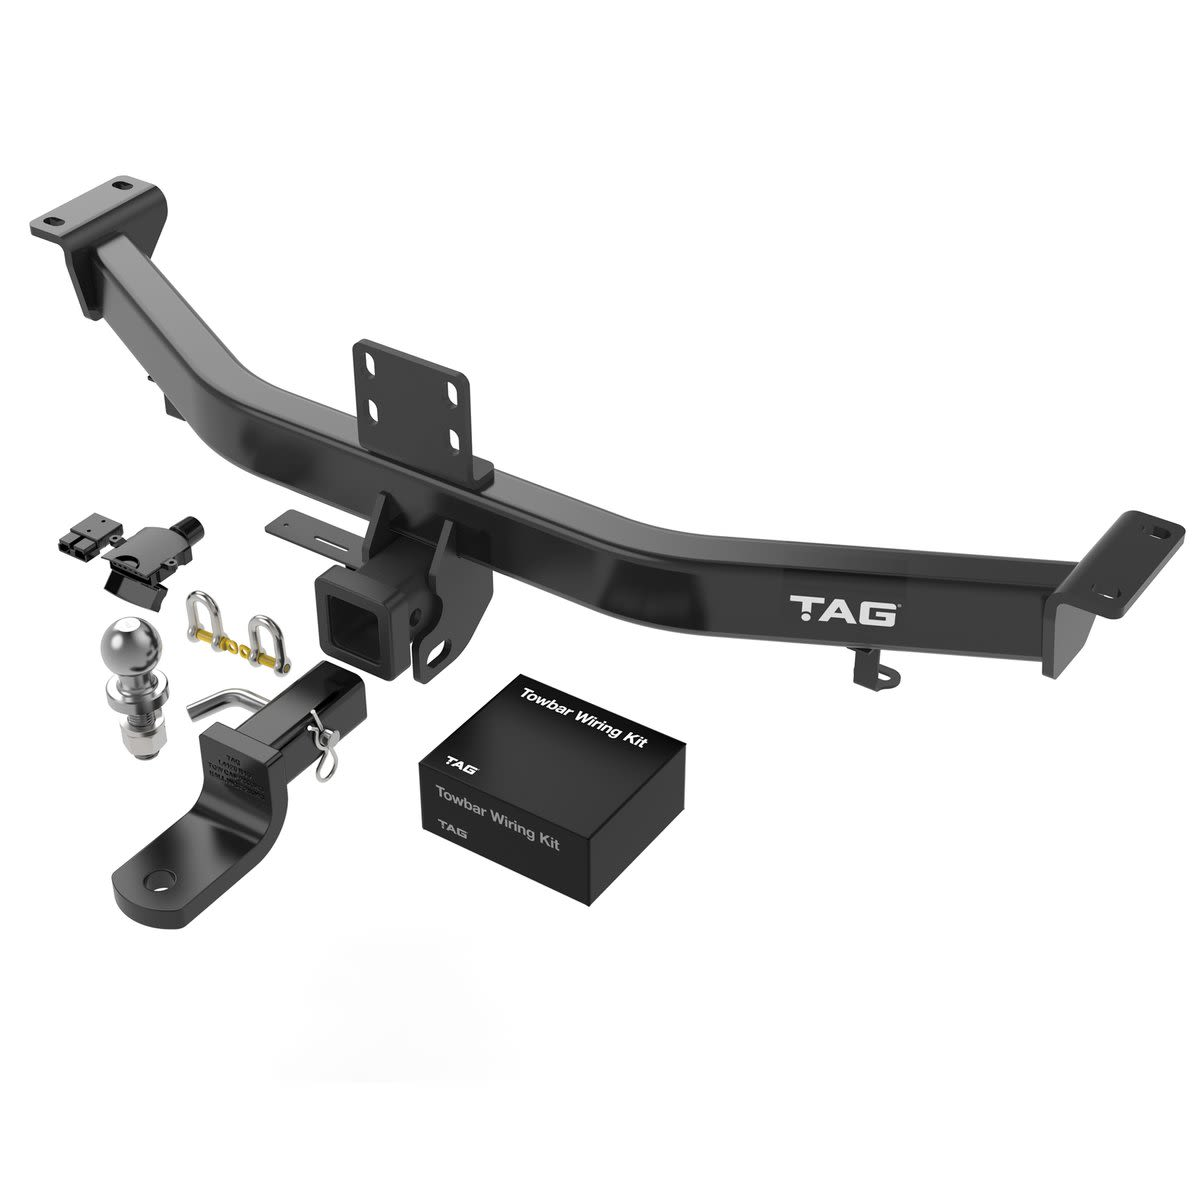 TAG Heavy Duty Towbar to suit Toyota Rav4 (02/2006 - 01/2013) - No Wiring Harness